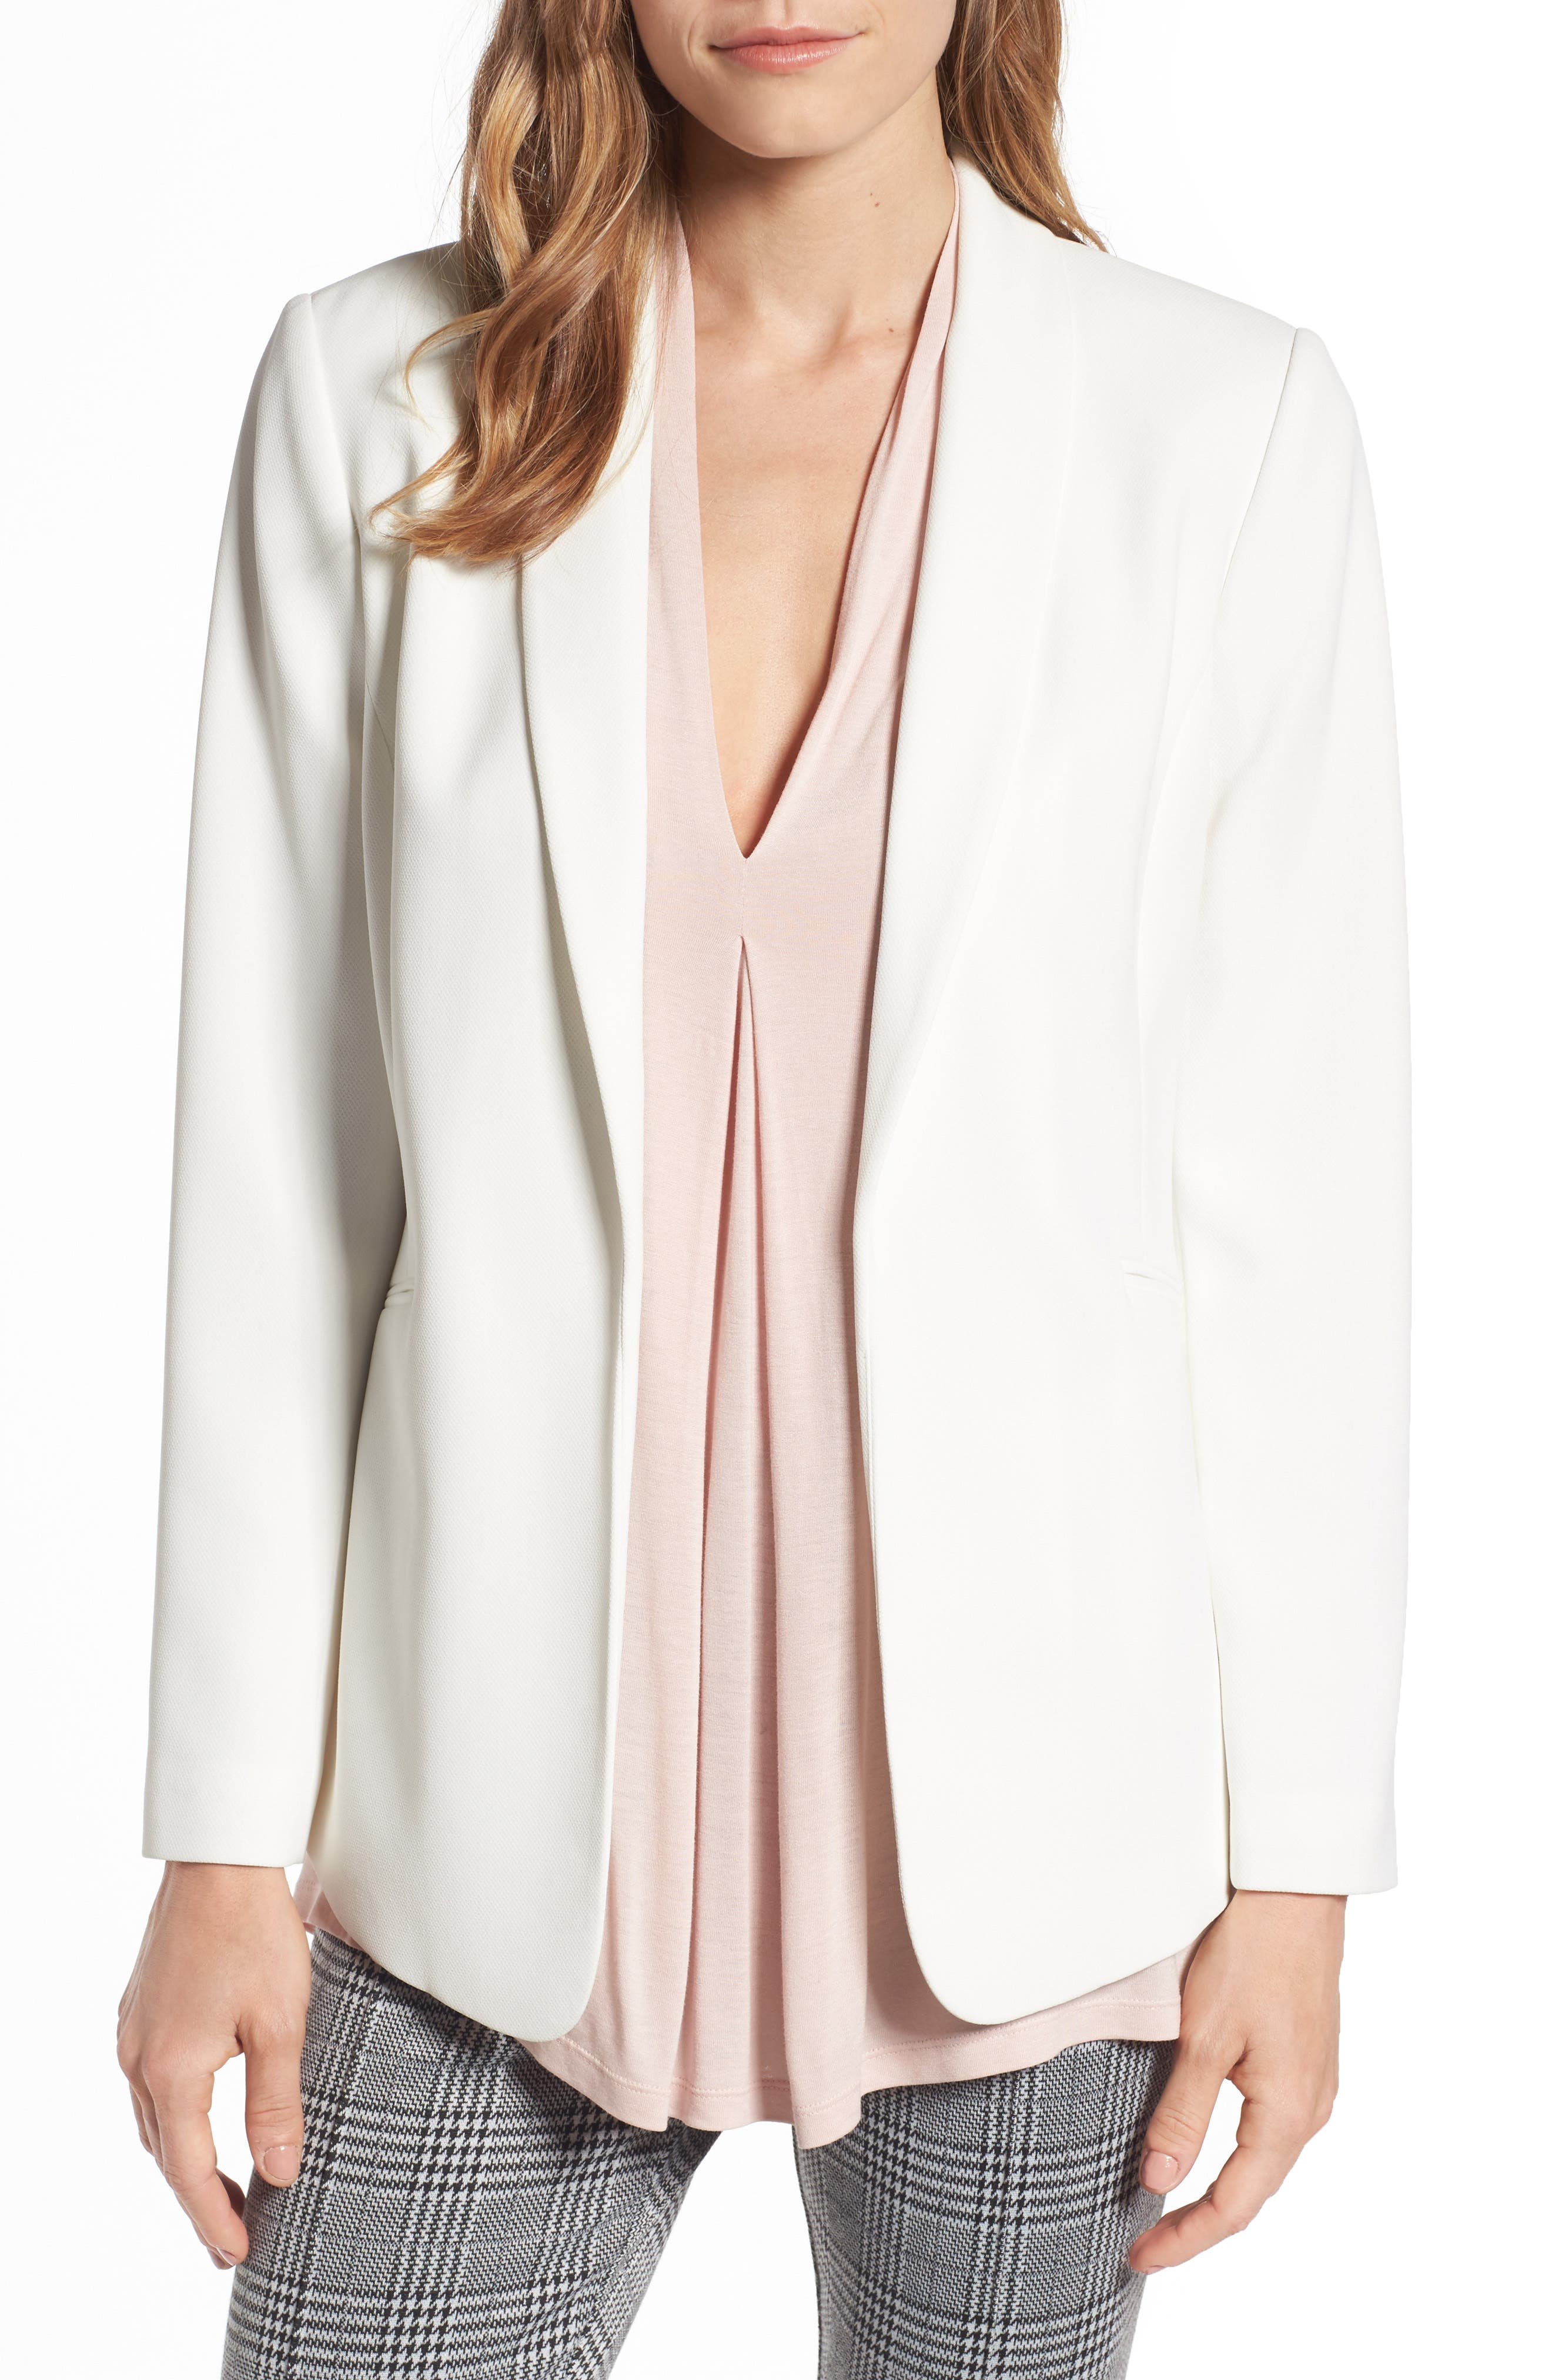 Alternate Image 1 Selected - Vince Camuto Texture Base Blazer (Regular & Petite)